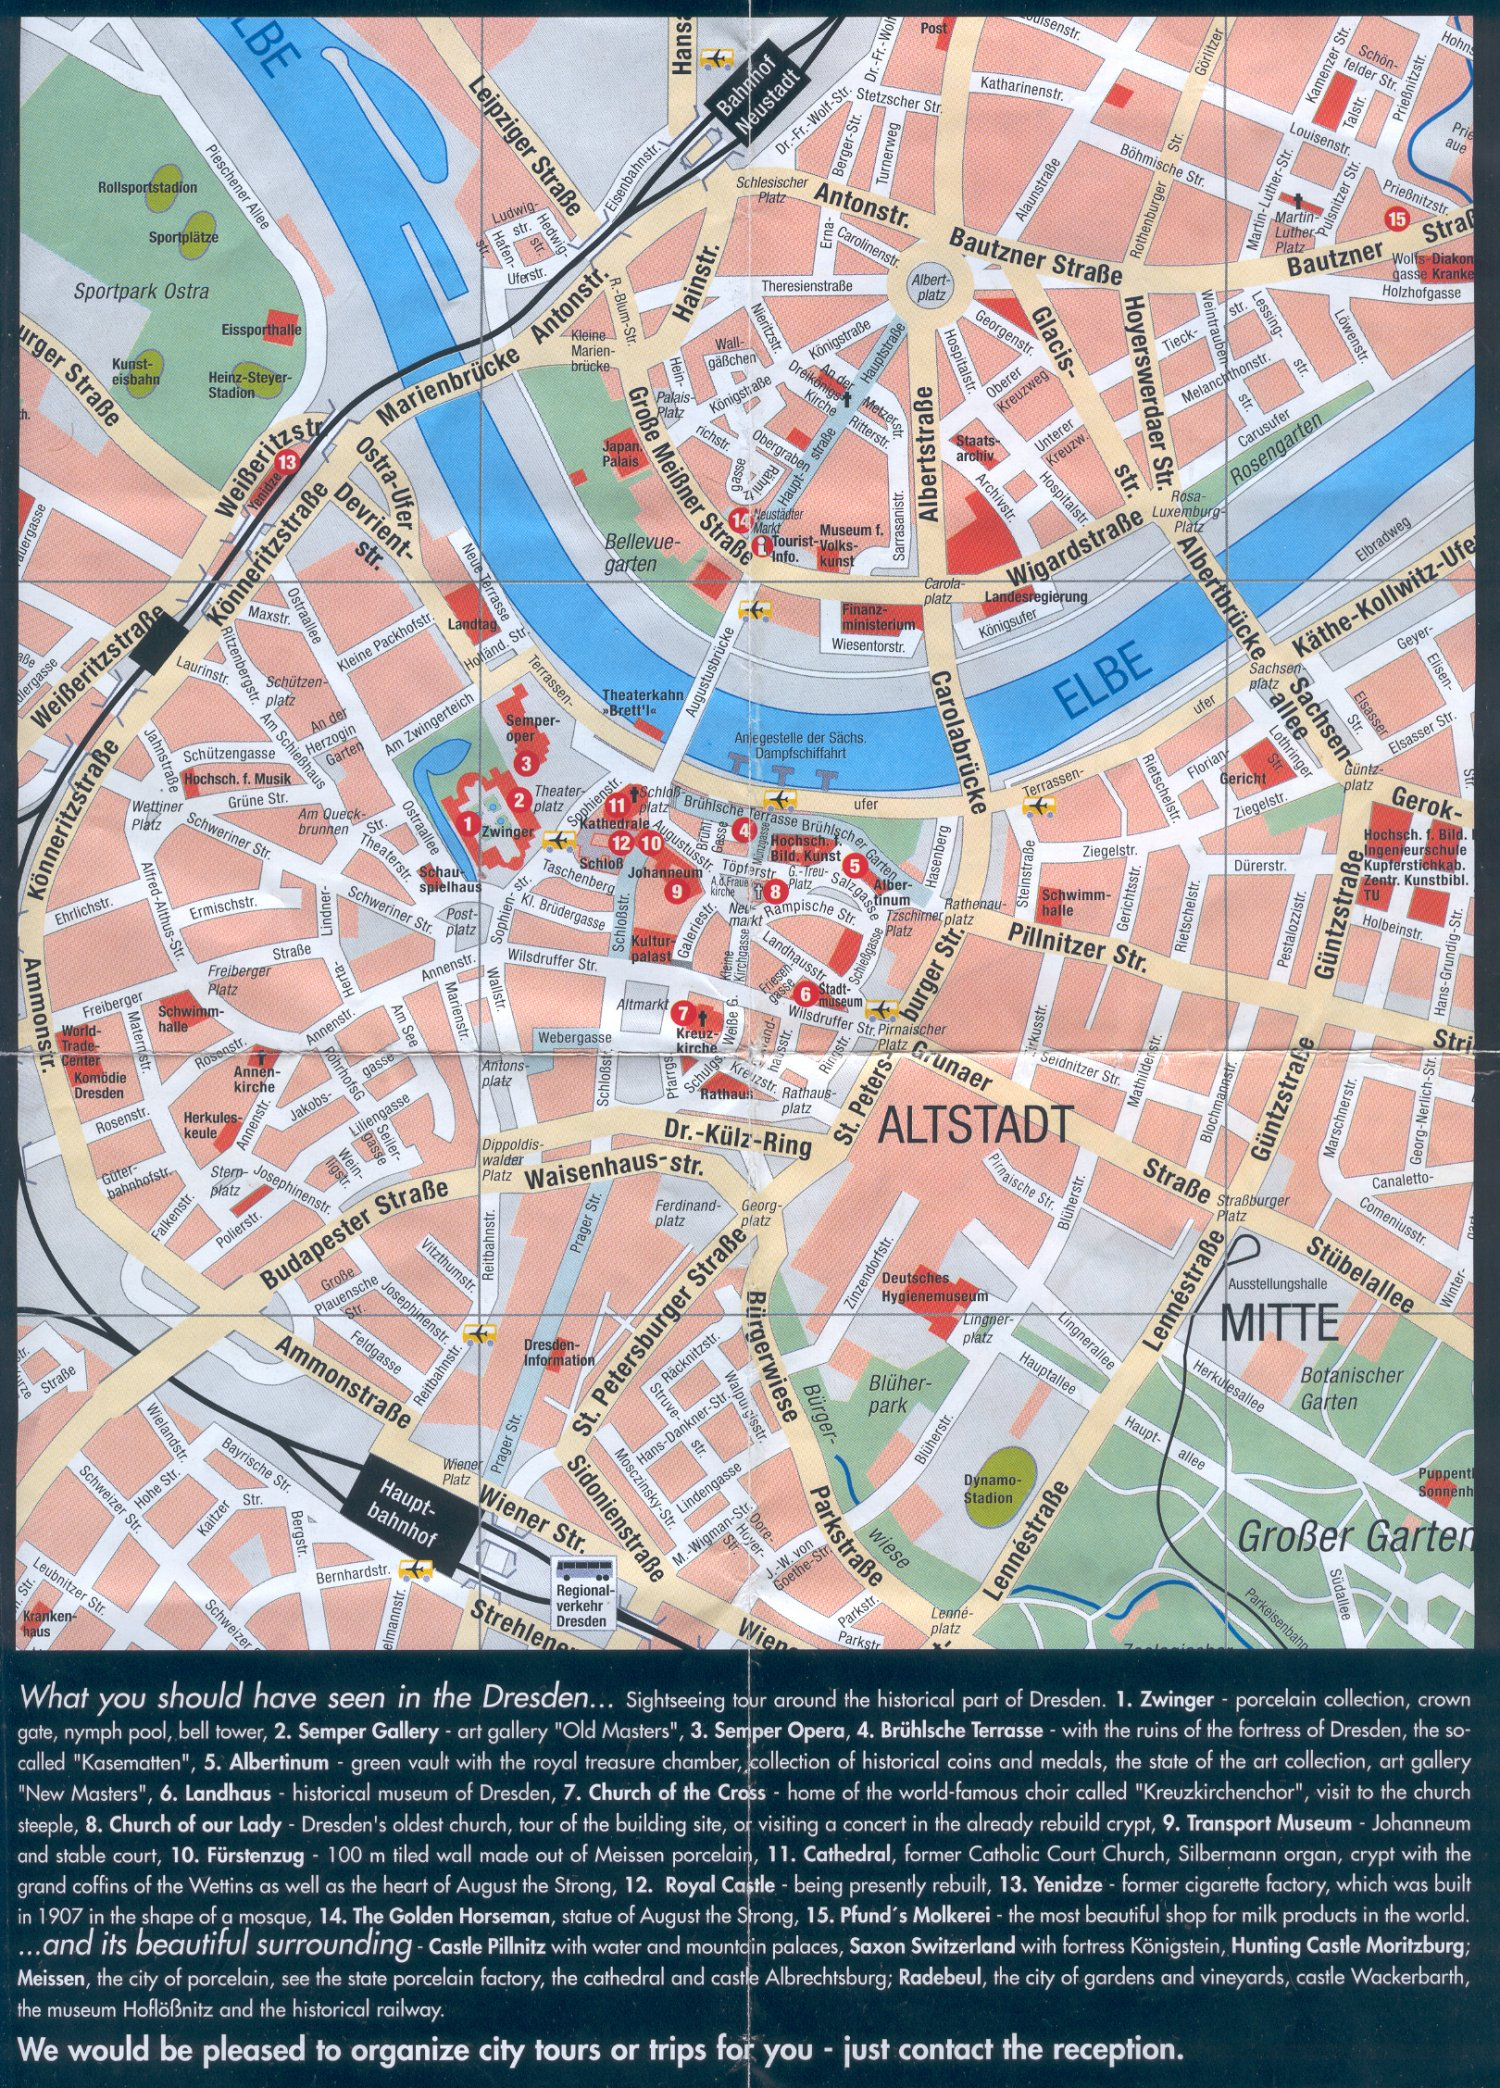 Bus Erfurt Berlin Guide To Bach Tour: Dresden - Maps